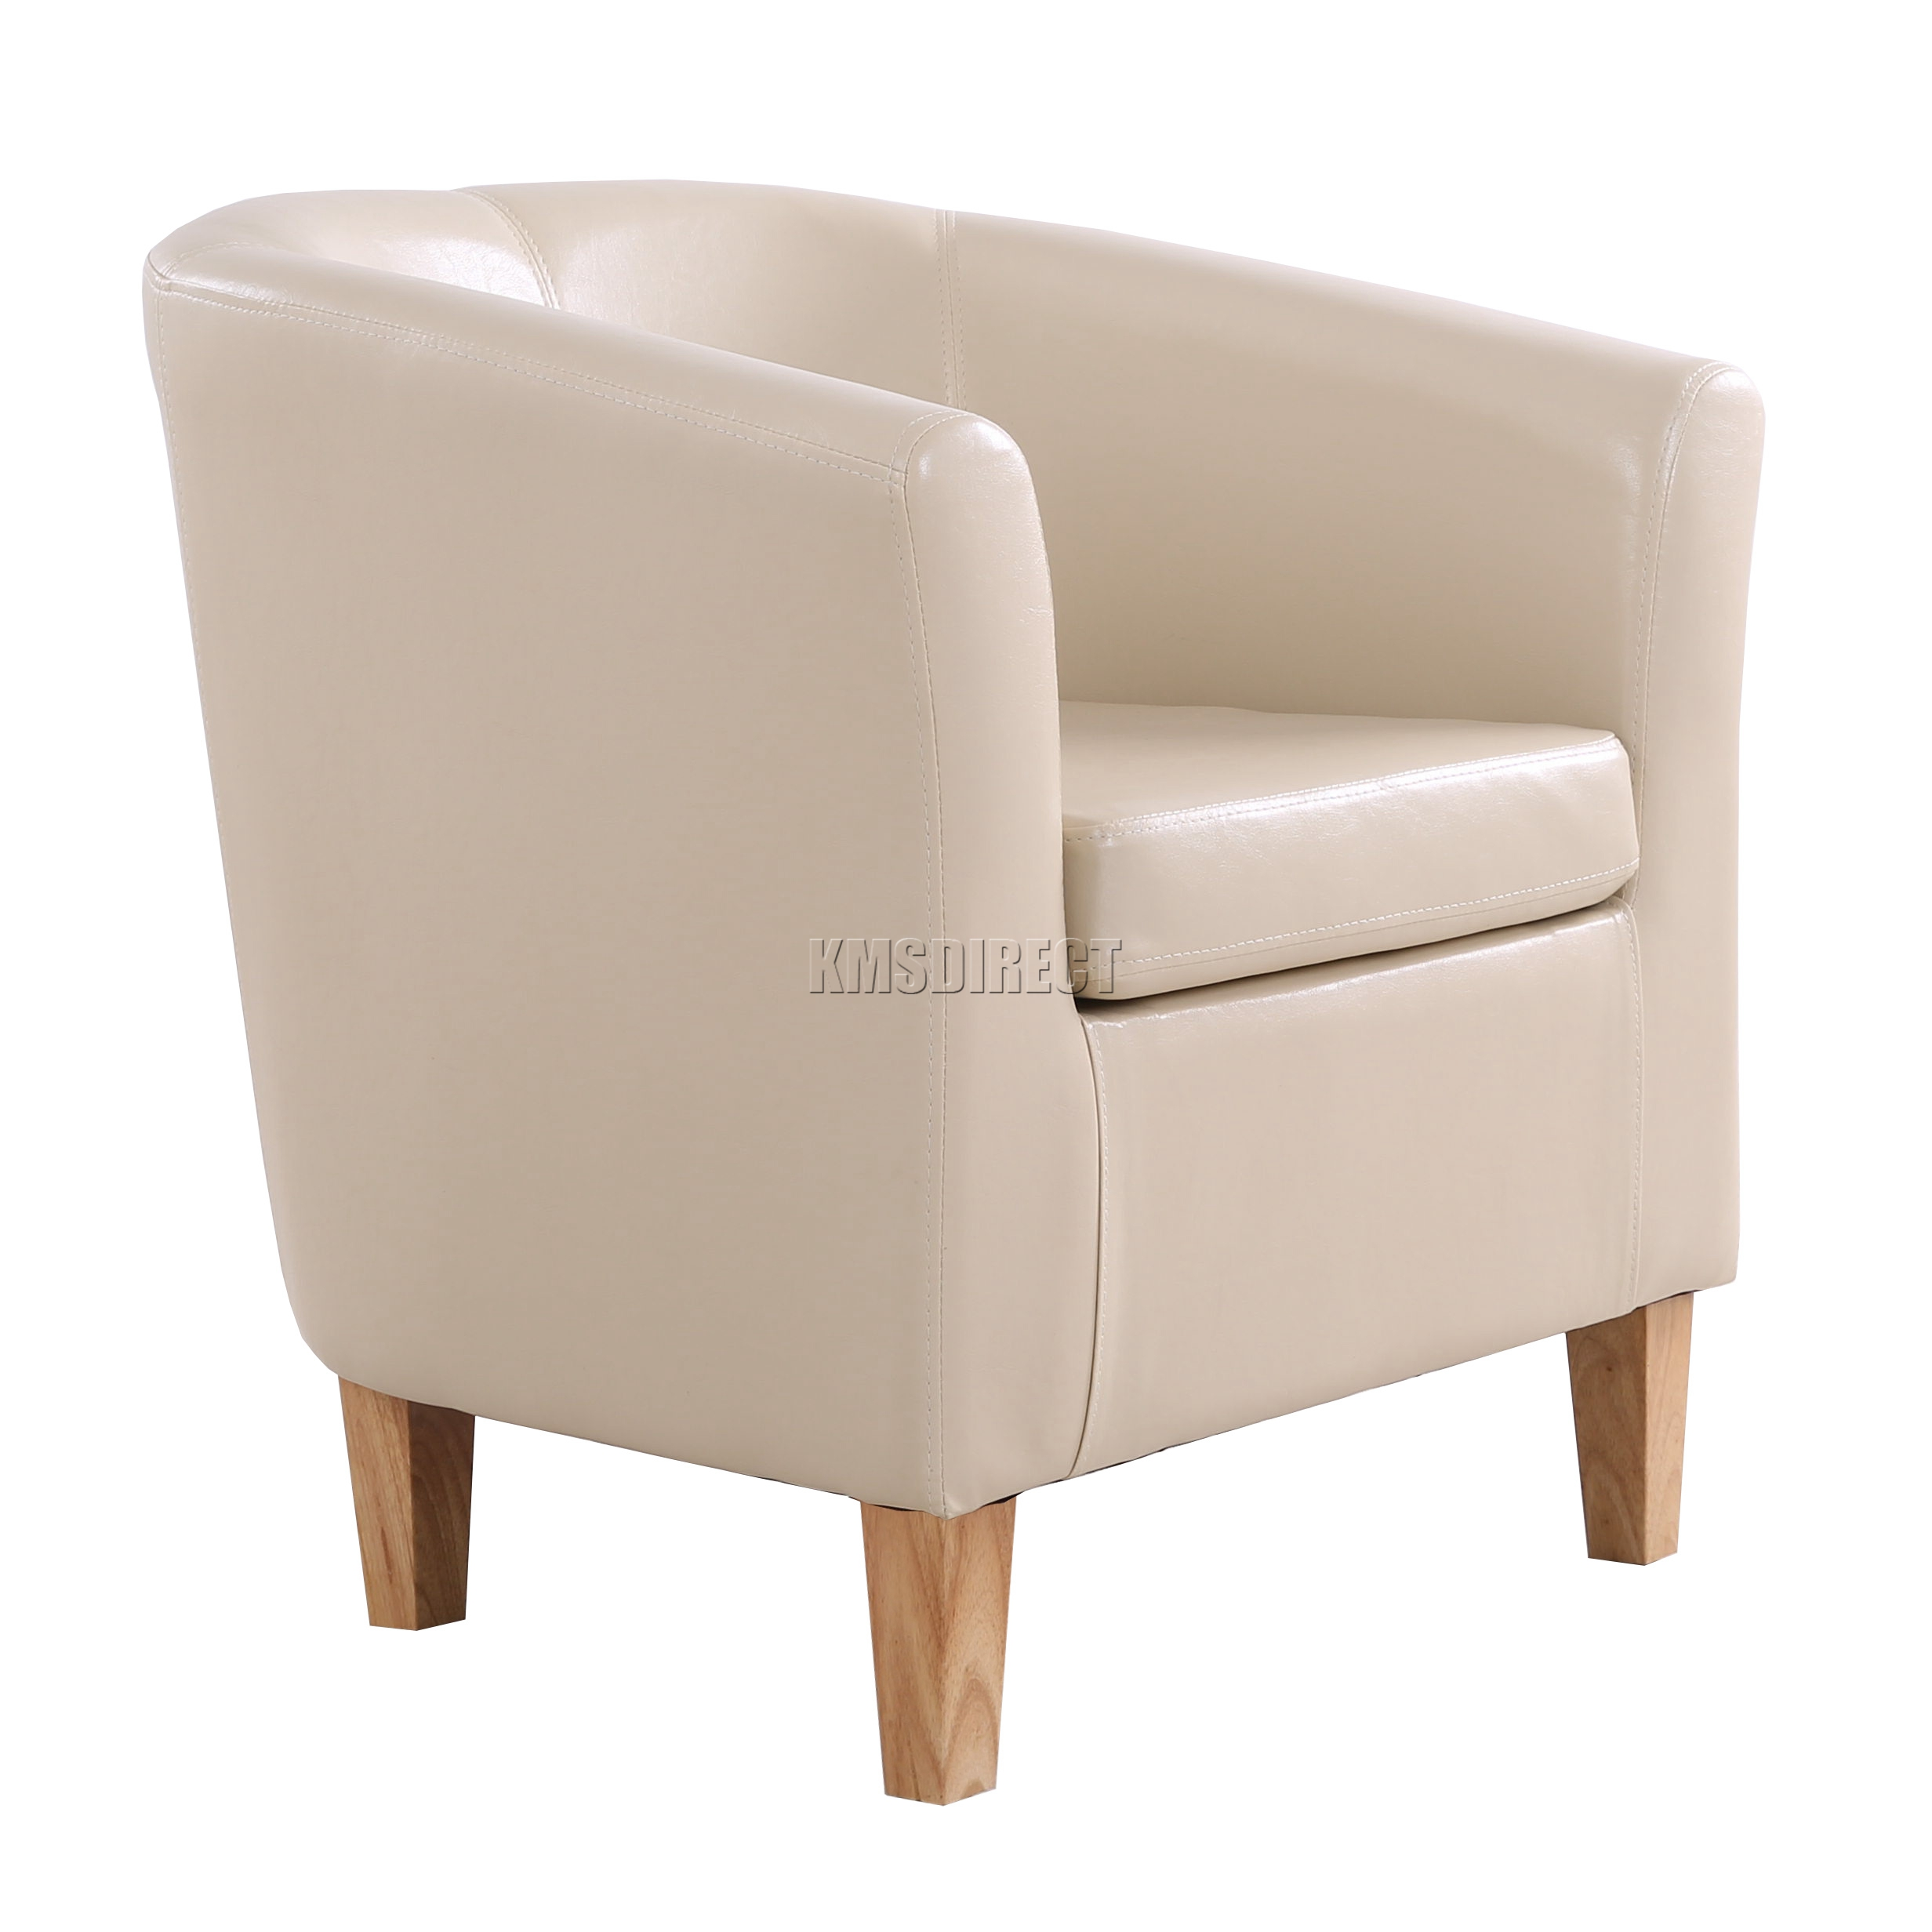 Ivory Leather Dining Room Chairs: FoxHunter Ivory Faux Leather Tub Chair Armchair Dining Room Lounge Furniture New